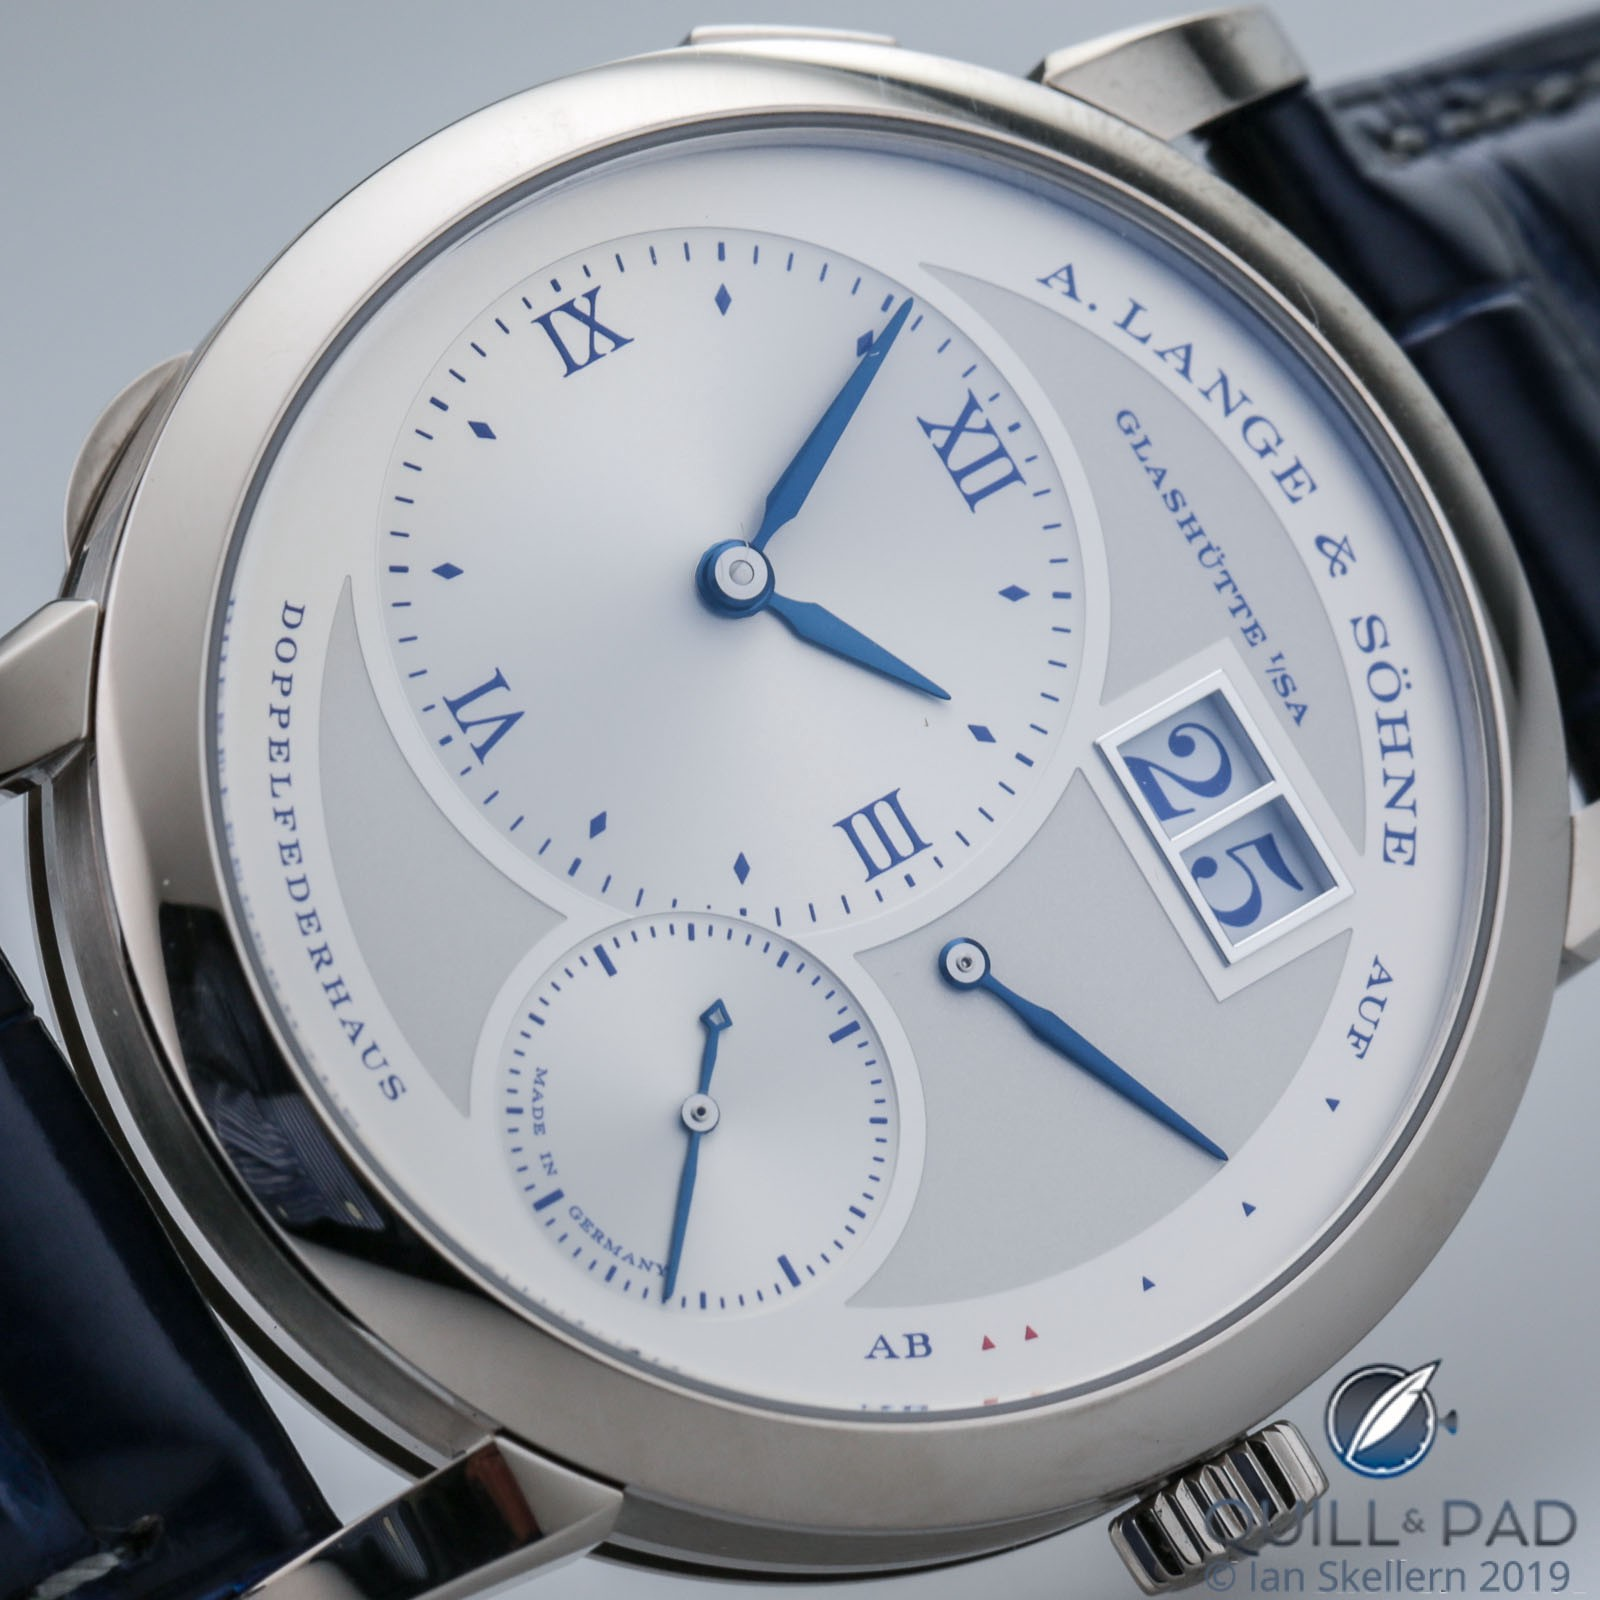 Dial of the A. Lange & Söhne Lange 1 25th Anniversary Edition